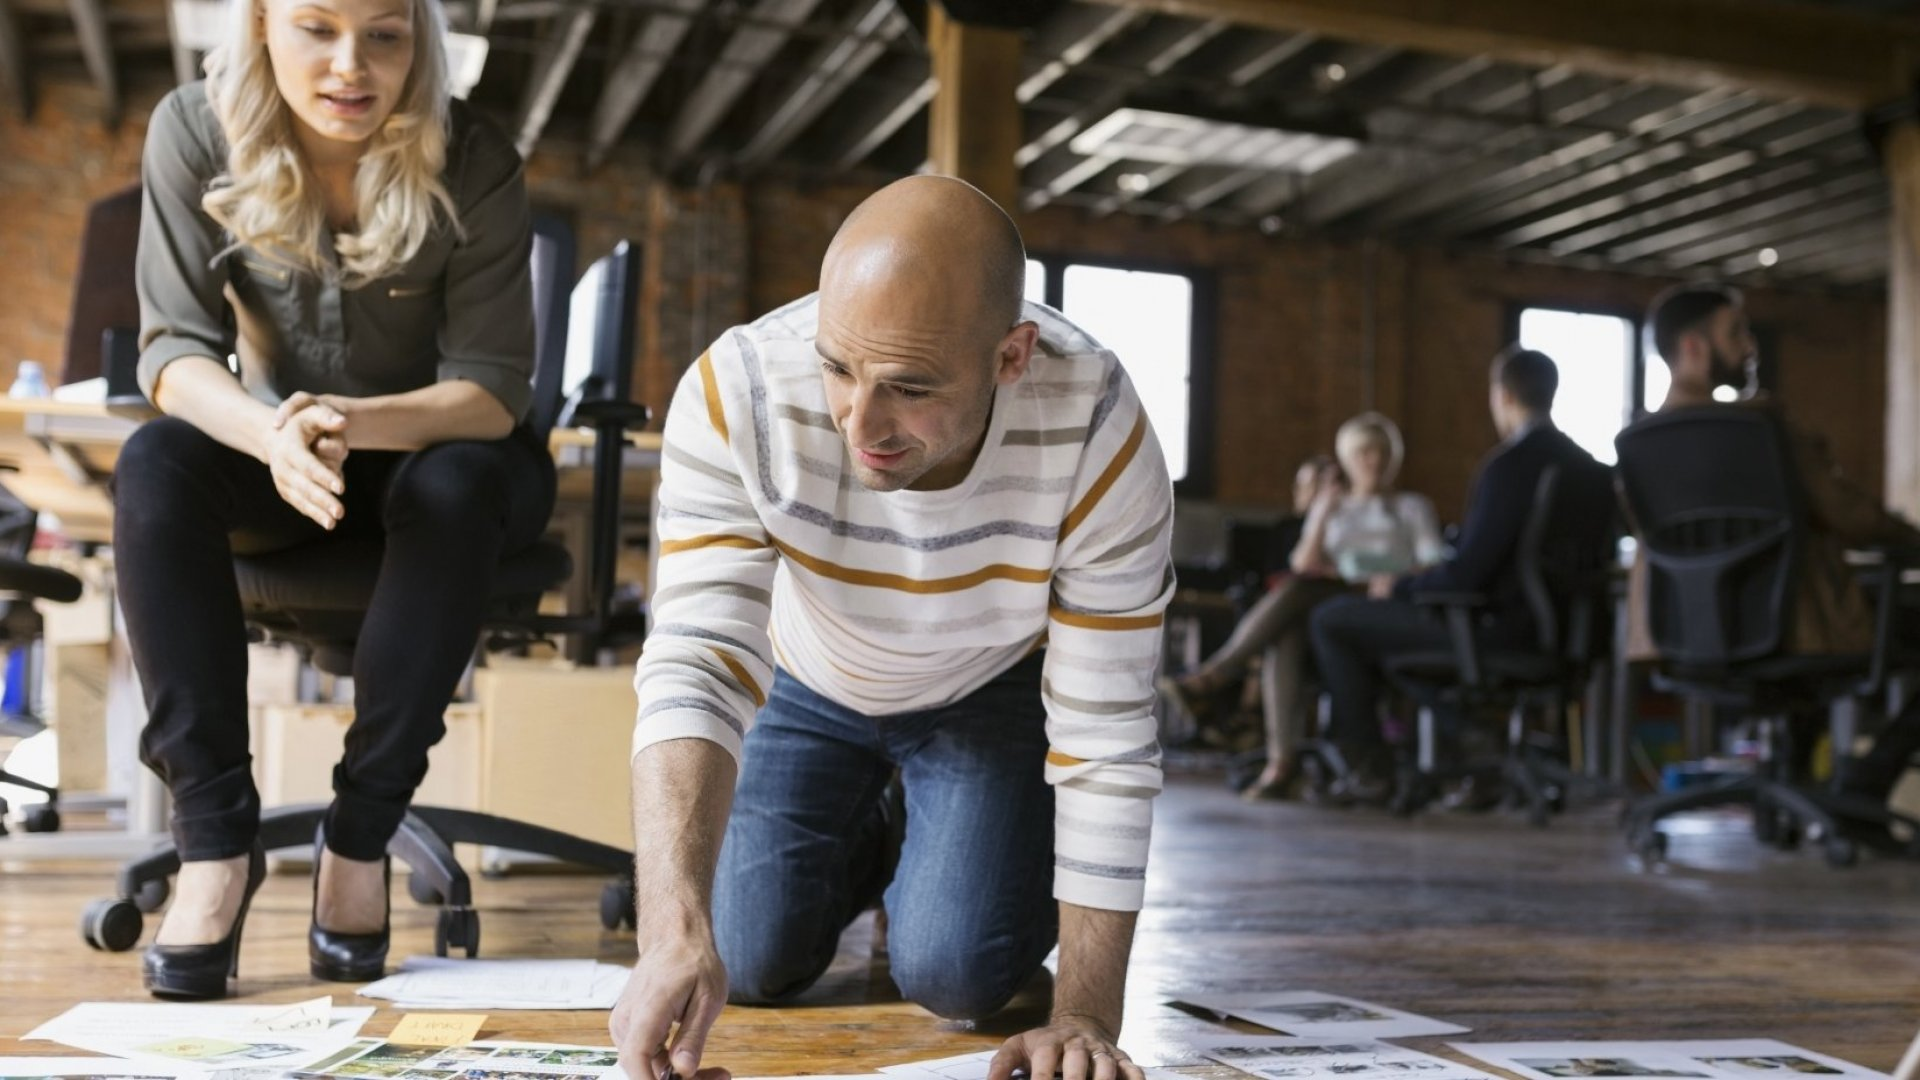 4 Big Ideas for Creating More Entrepreneurs